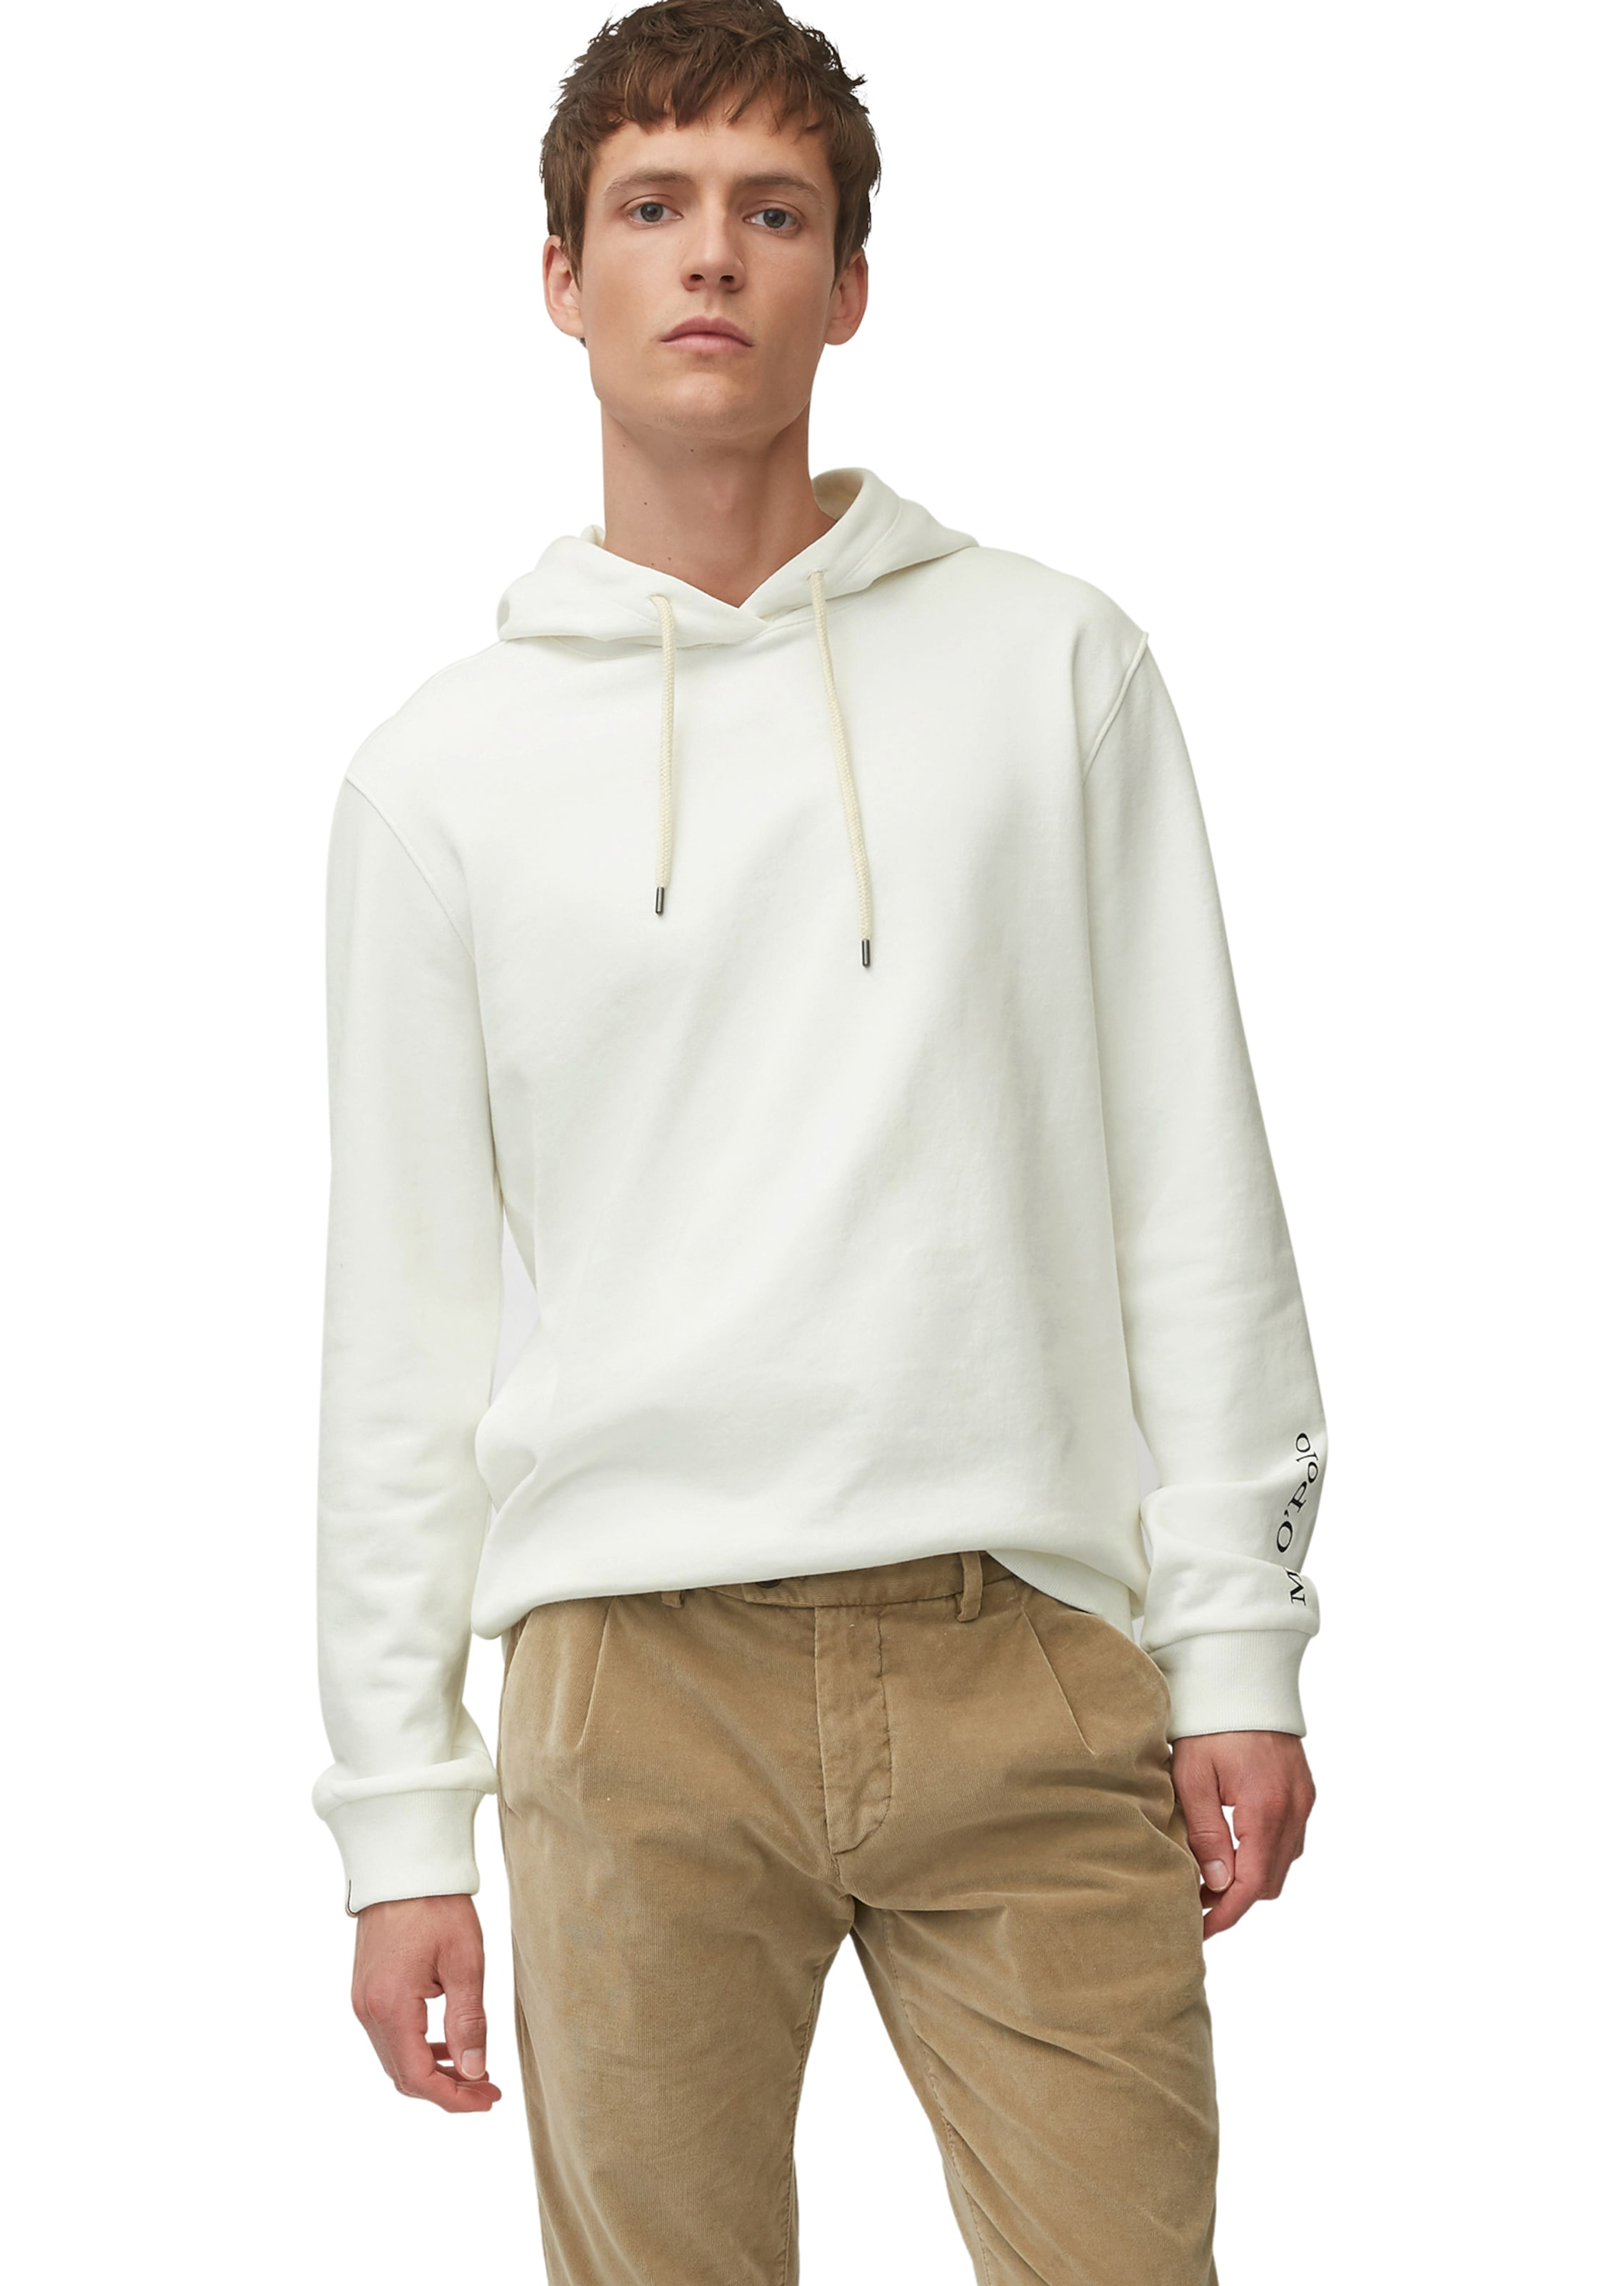 Offwhite Marc In Marc Hoodie O'polo 3qc54ALRj